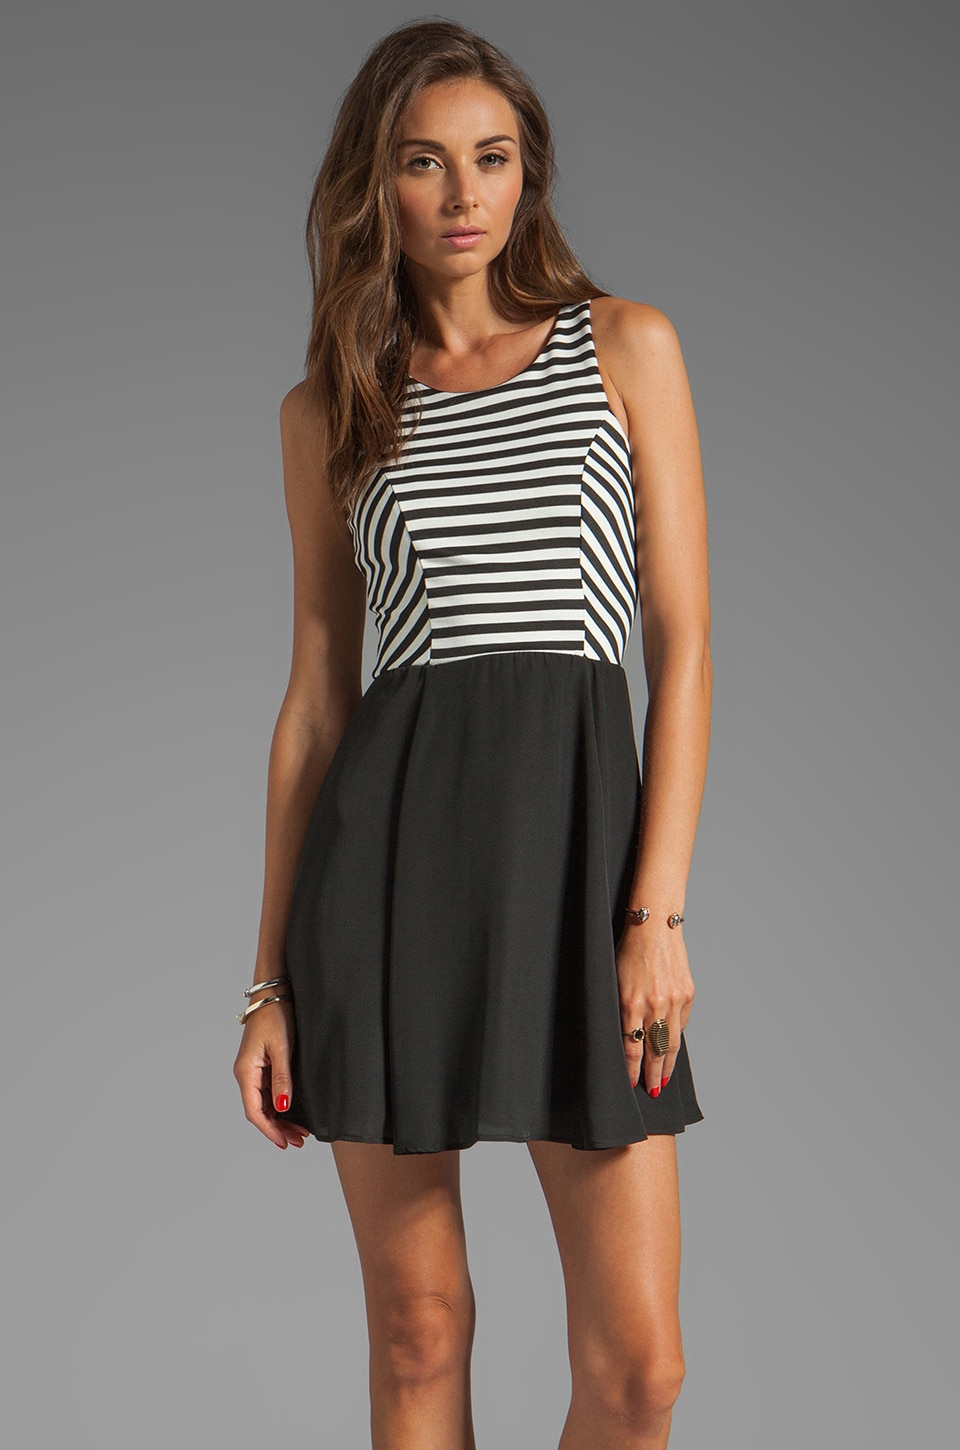 Eight Sixty Stripe Tank Dress in Black/White